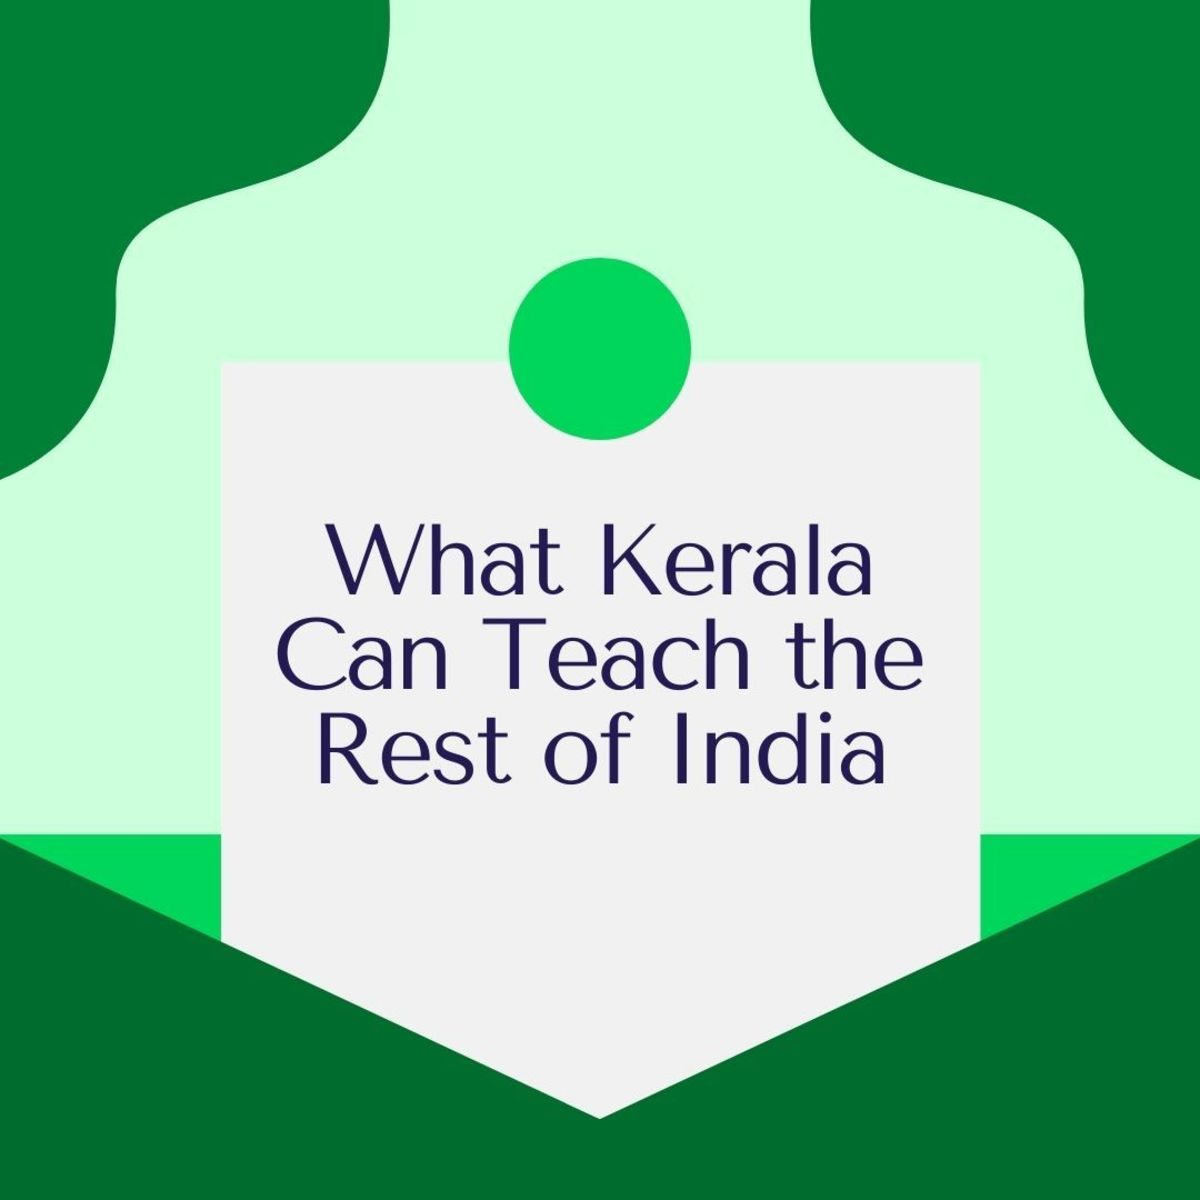 Kerala, a tiny southern state of India, has drawn both international and national attention due to its impressive performance in social development and demographic transition.